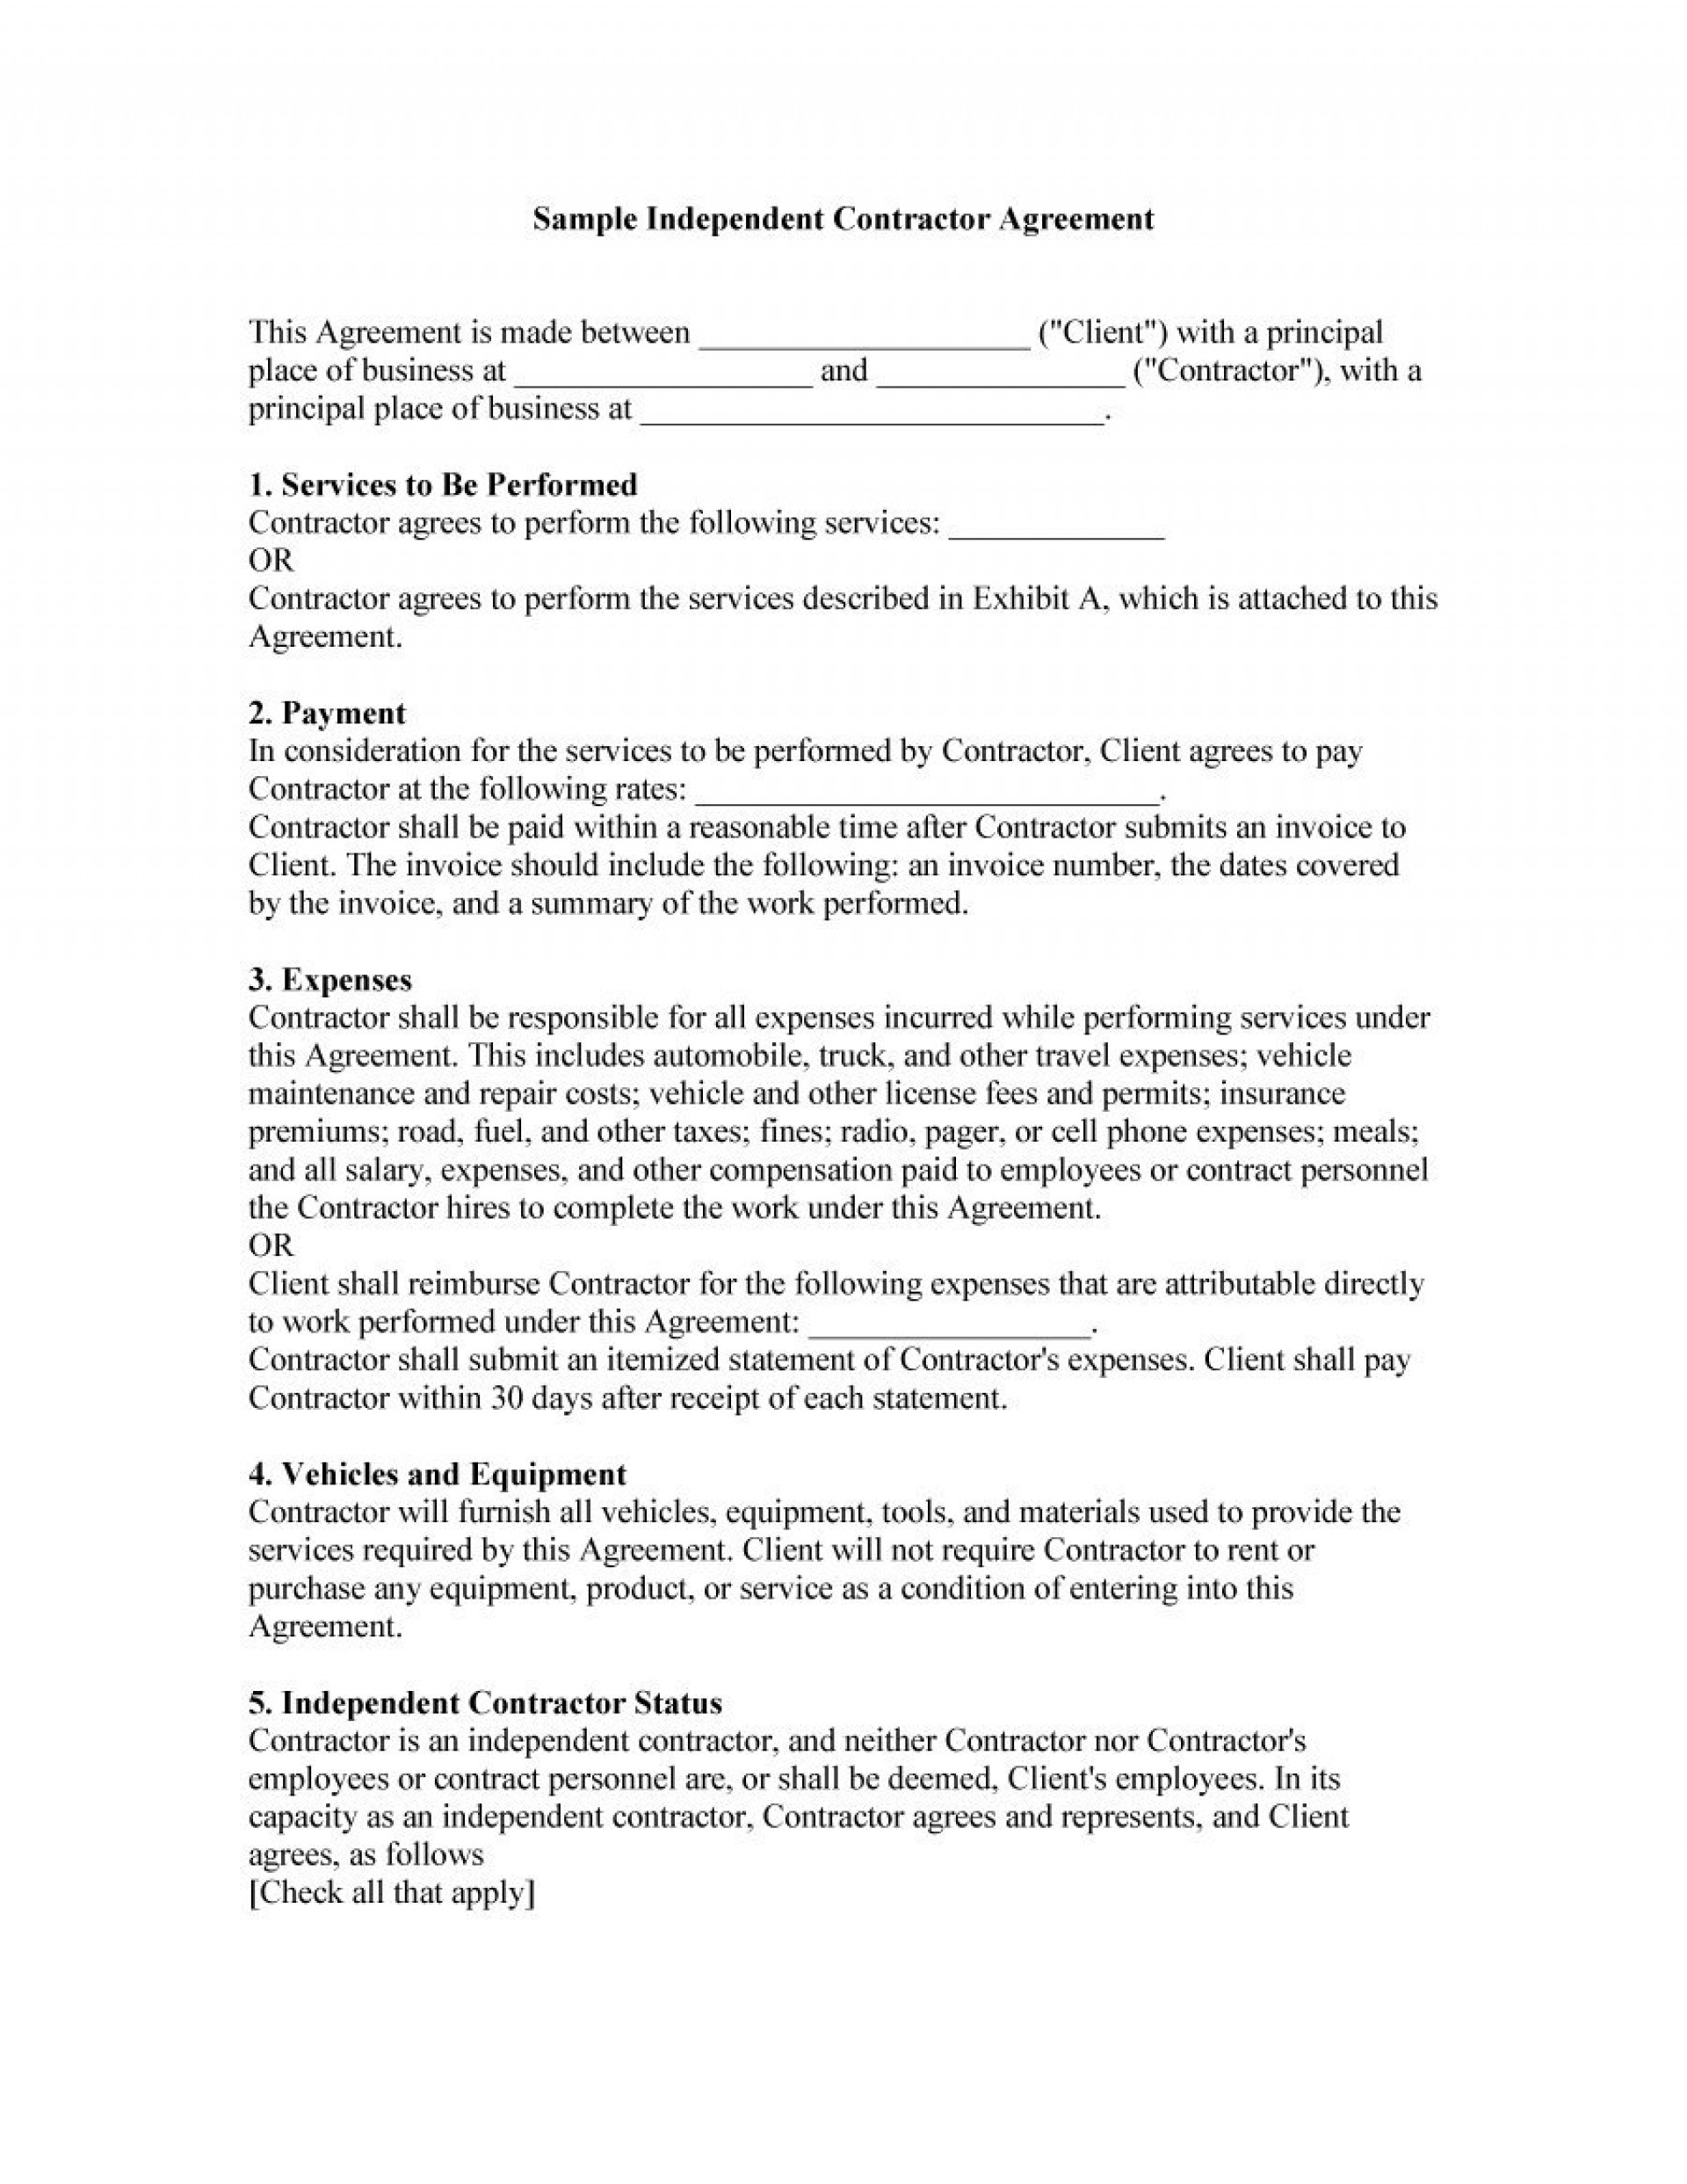 Independent Contractor Agreement Template Free